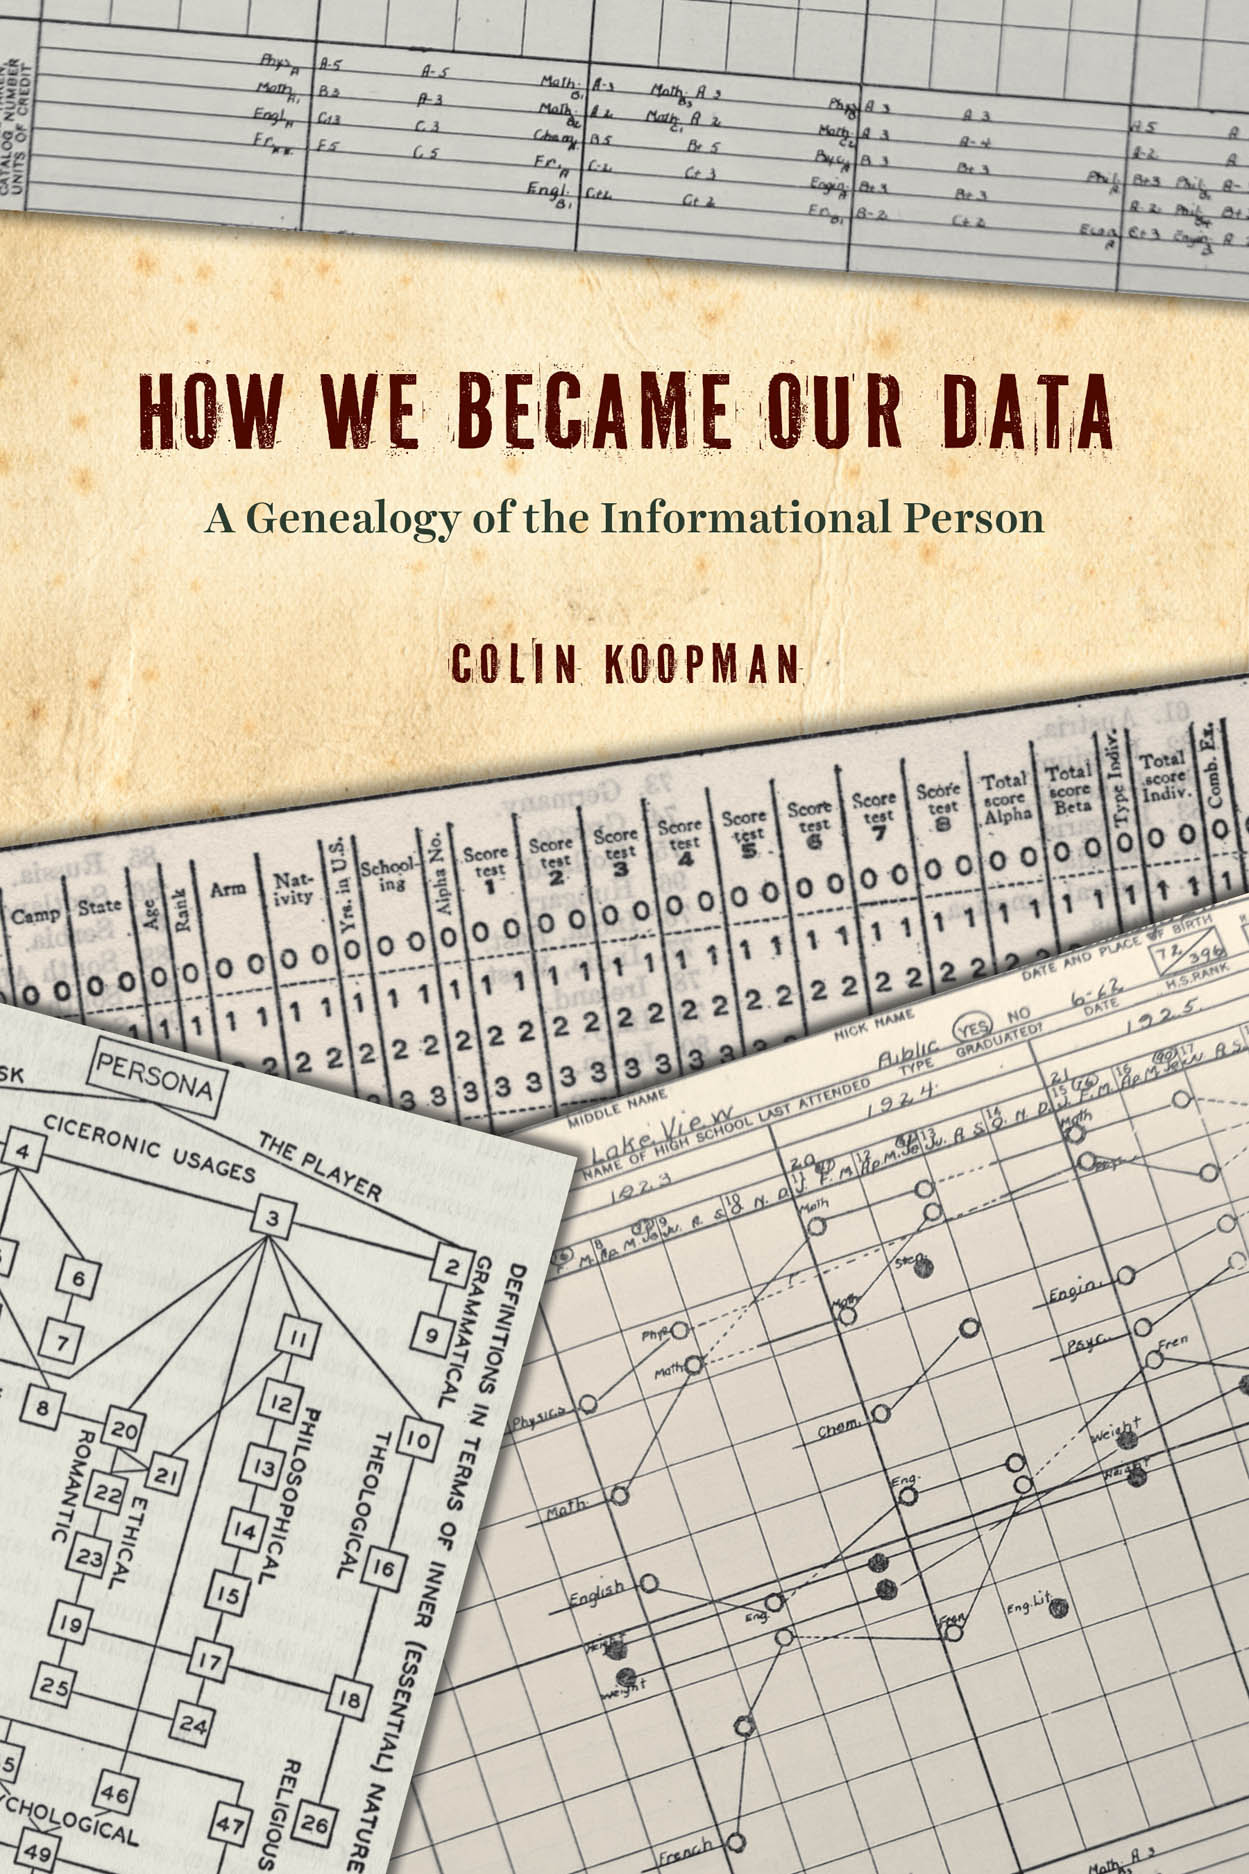 How We Became Our Data: A Genealogy of the Informational Person